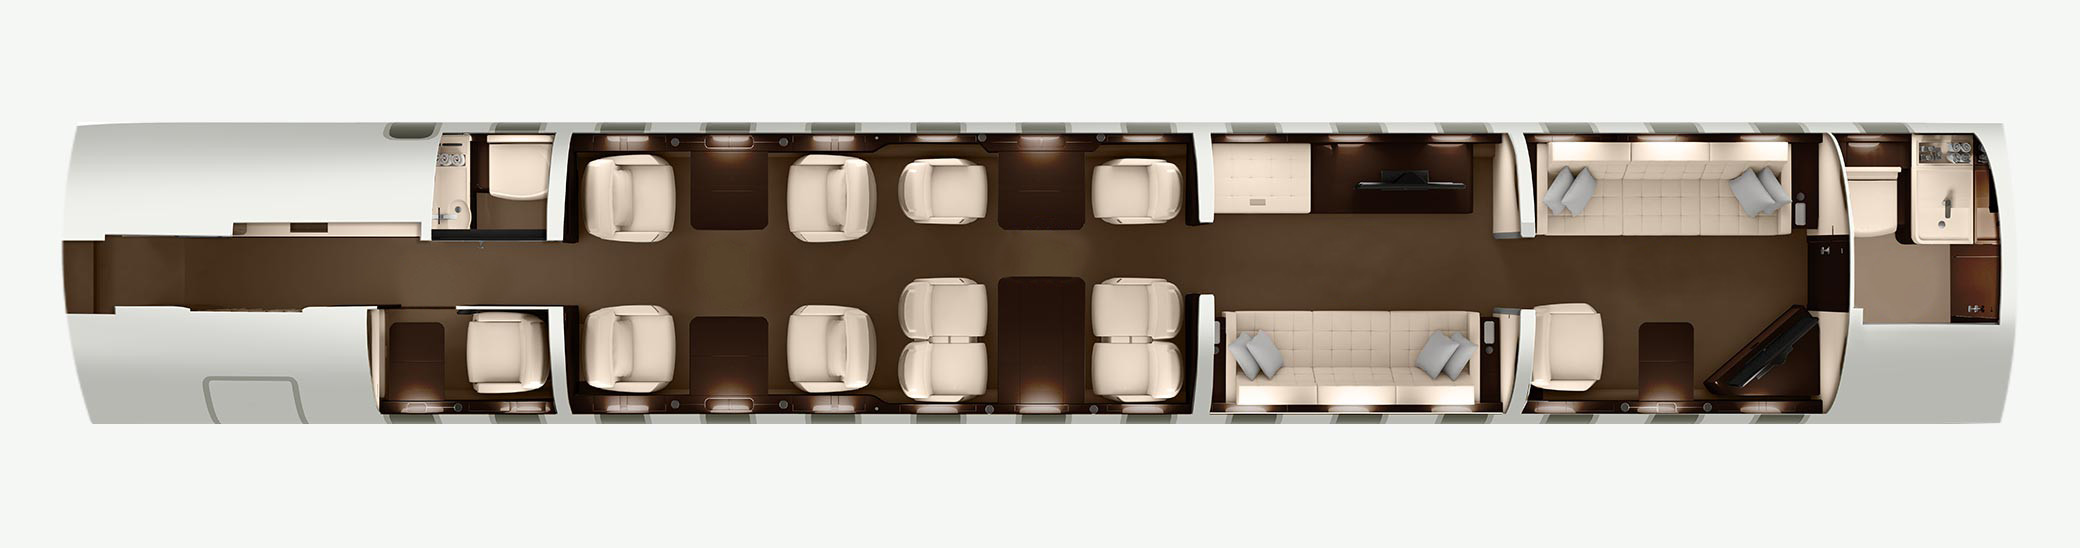 Global 7500 floorplan